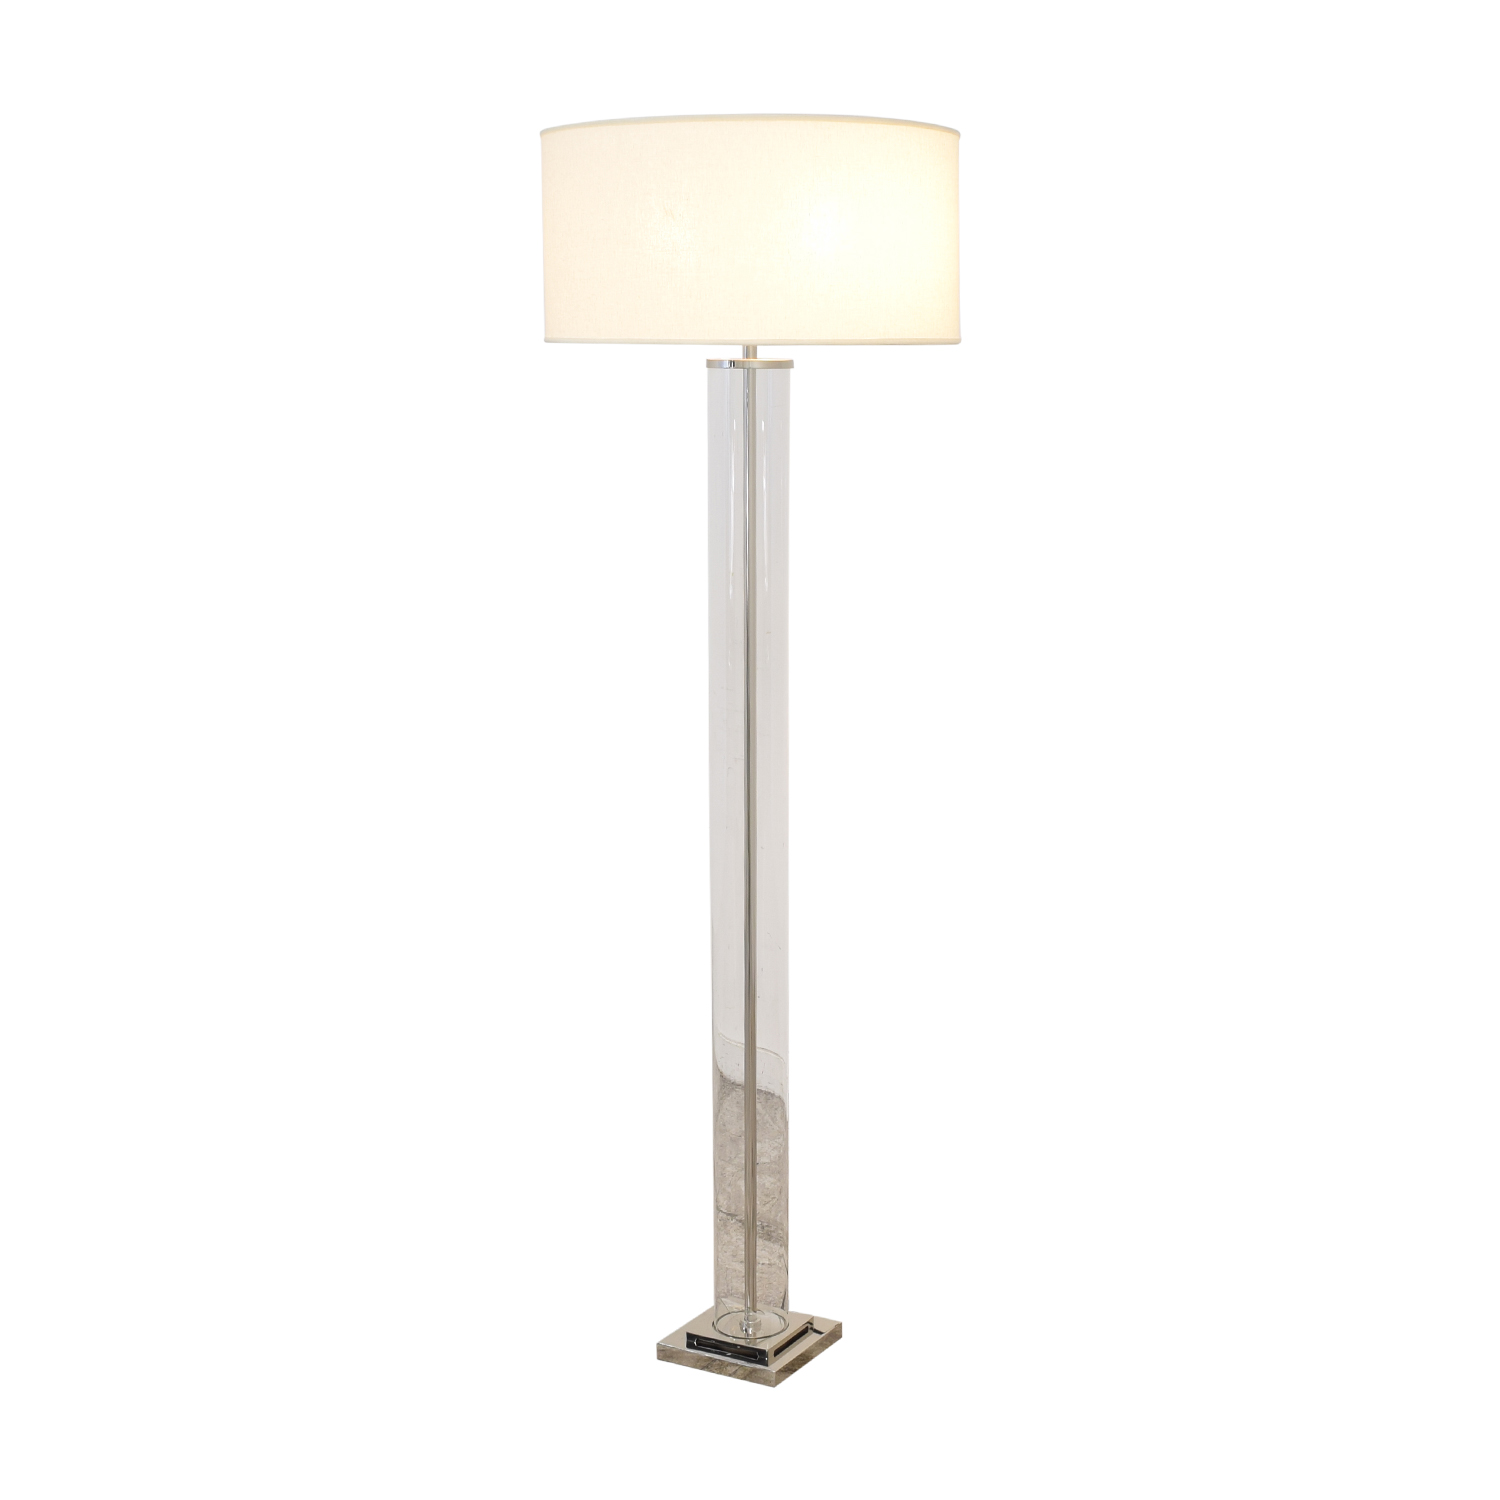 Restoration Hardware Restoration Hardware French Column Glass Floor Lamp with Shade for sale